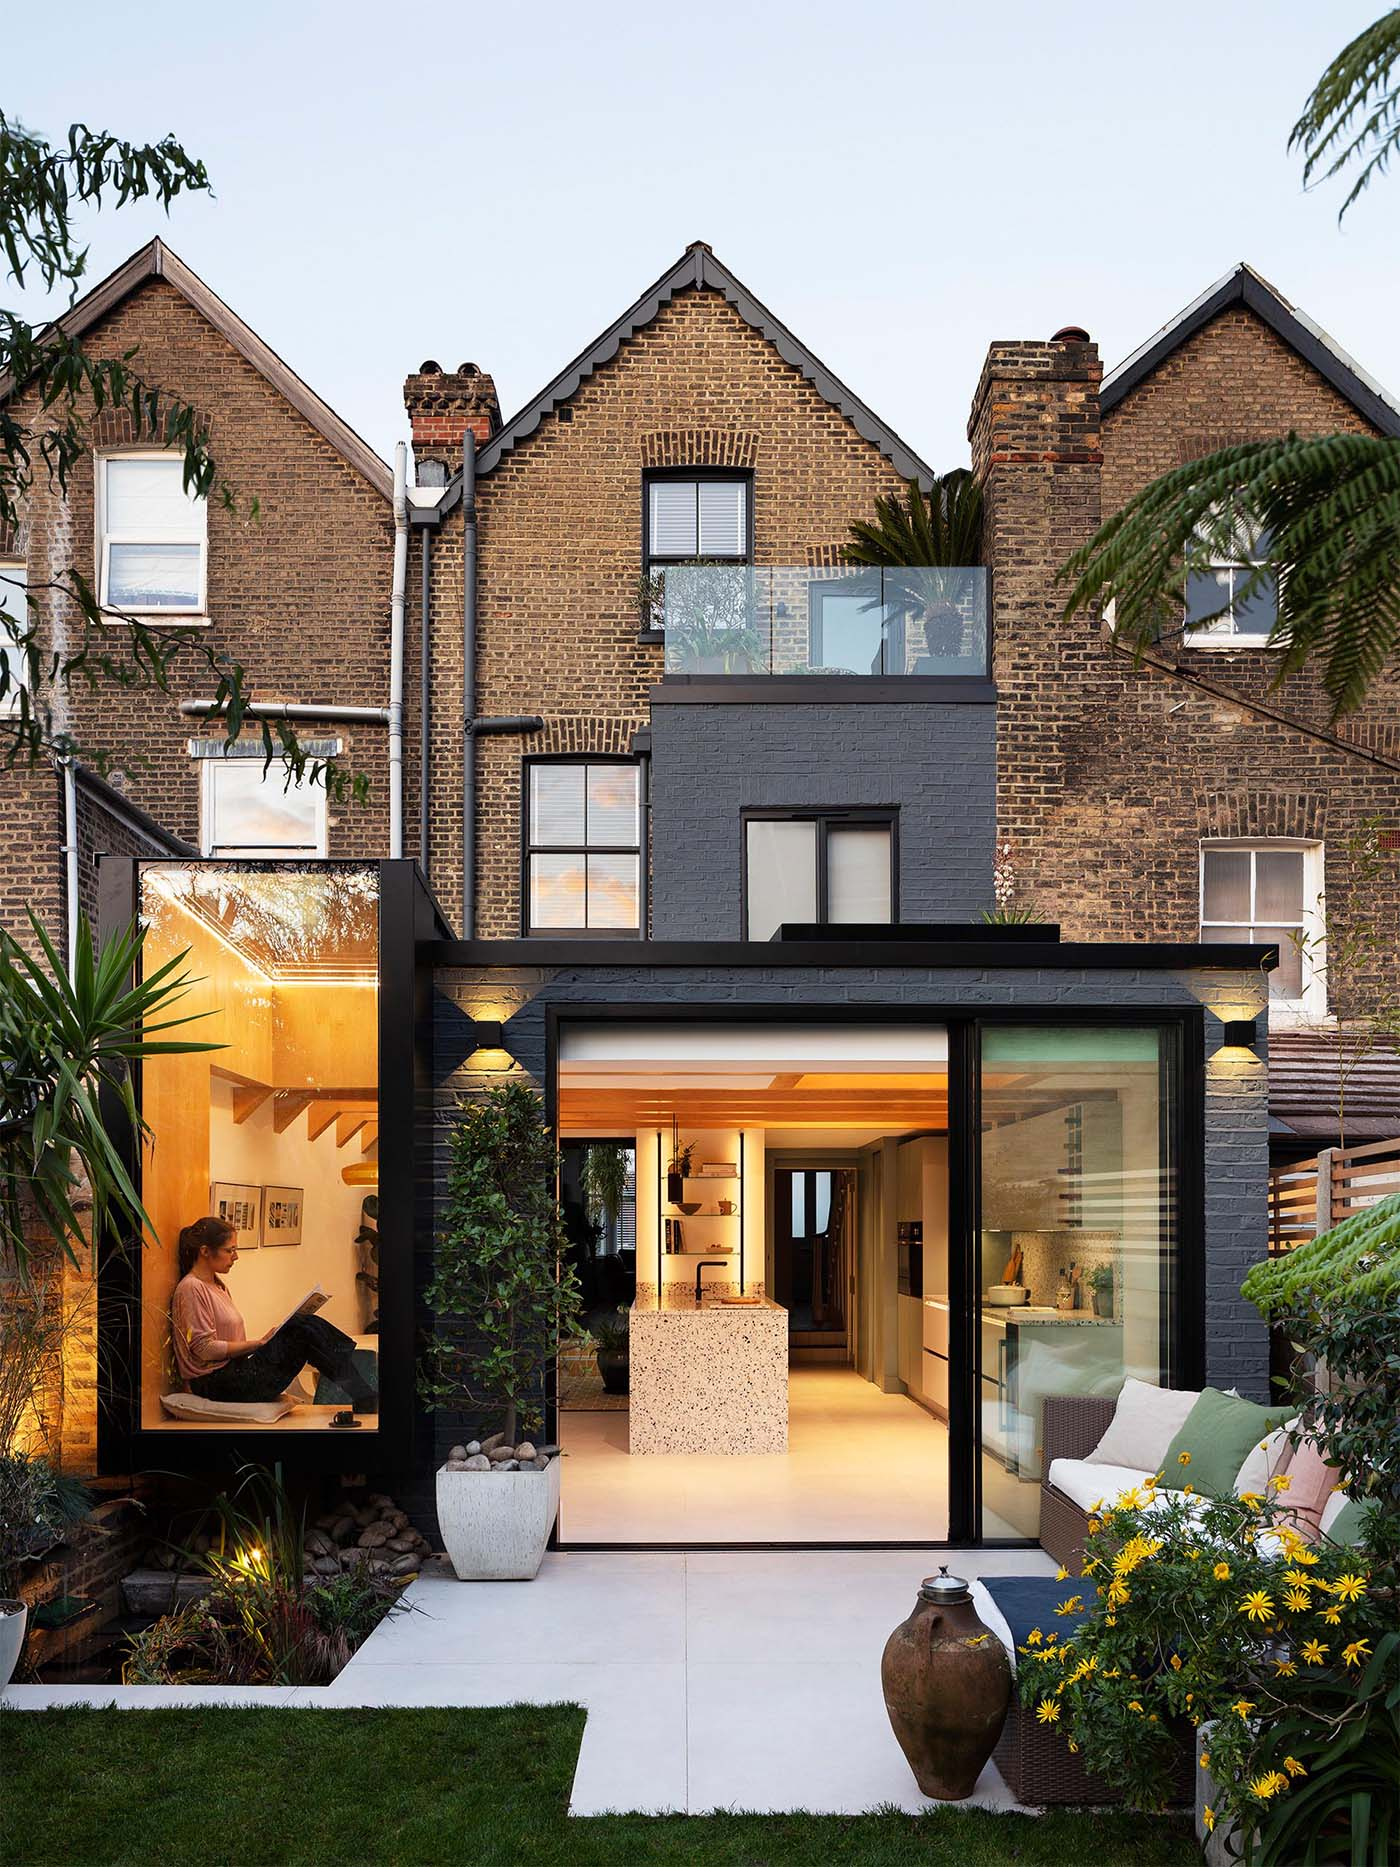 A side and rear extension for a Victorian mid-terrace house in London, England, that includes a window seat and an internal courtyard.